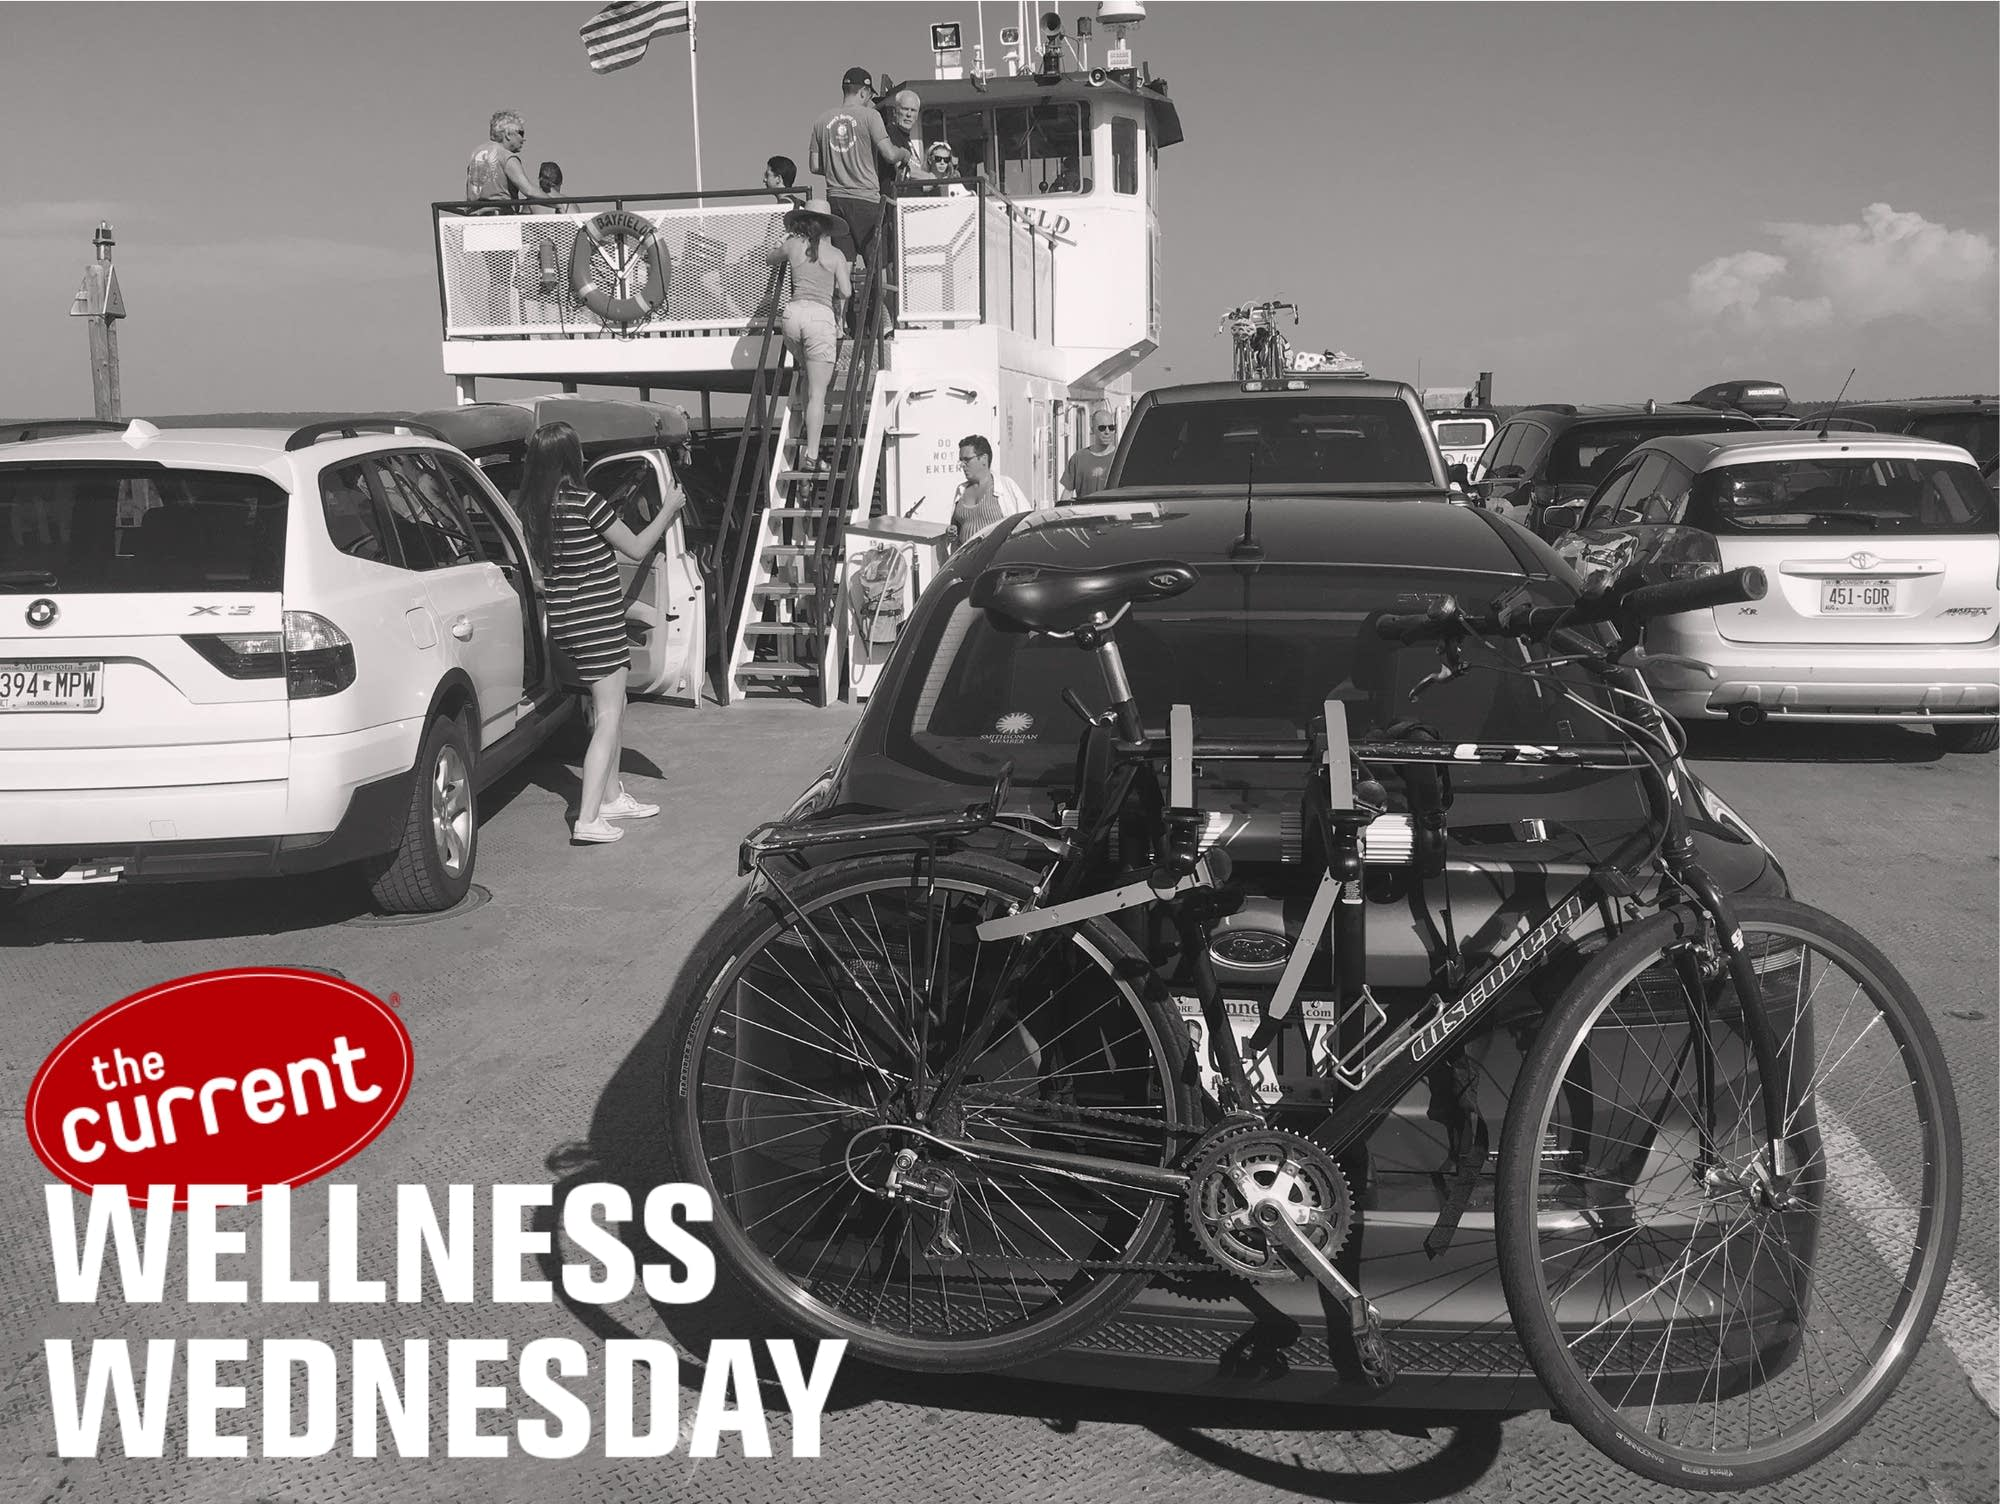 Black and white image of bicycles mounted on a car rack on a ferry.